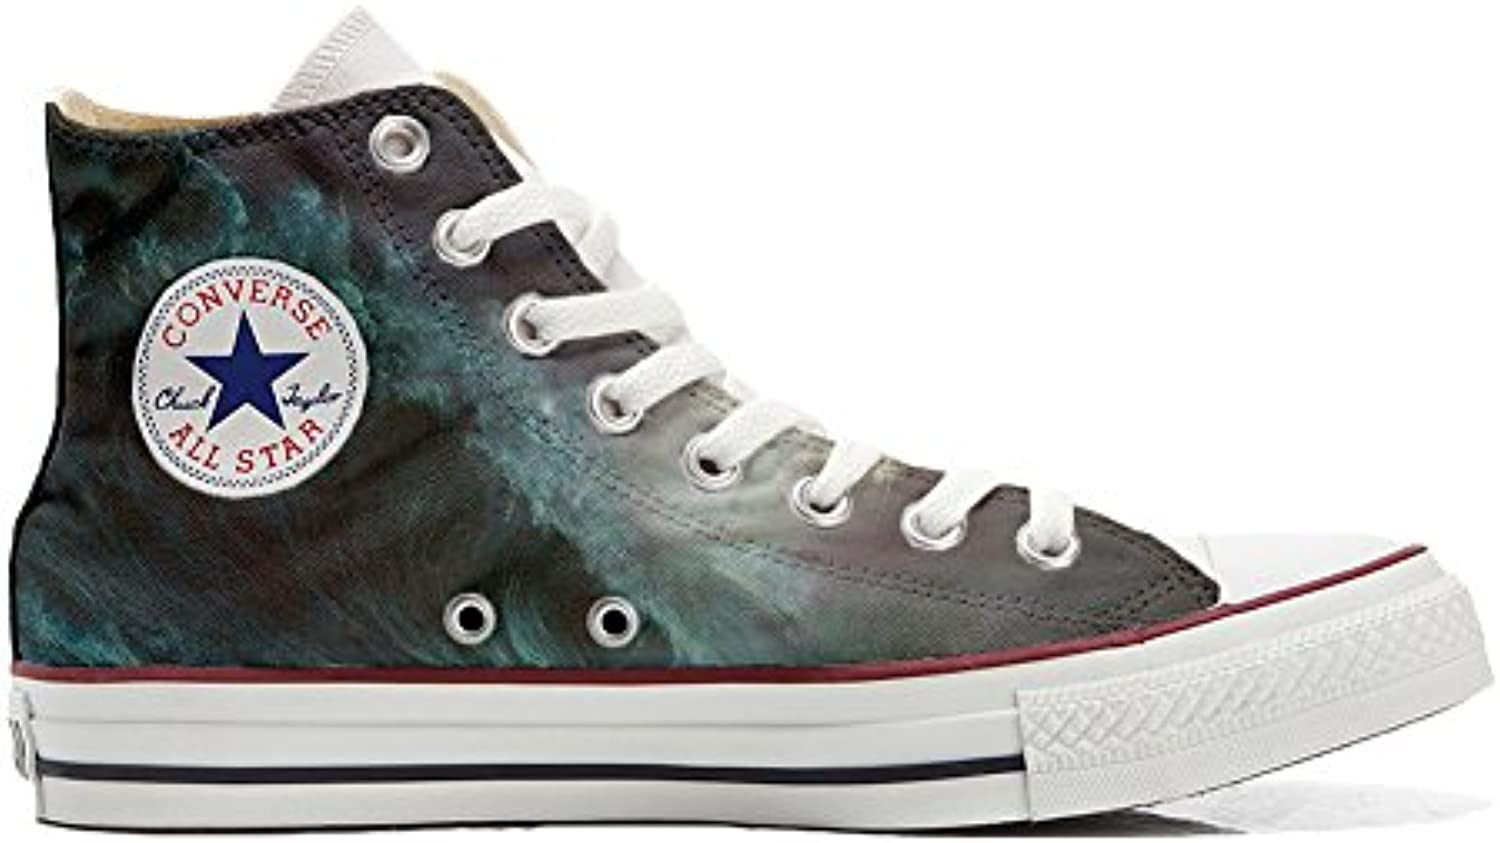 Converse All Star Zapatos Personalizados Unisex (Producto Handmade) Flowery Paisley -